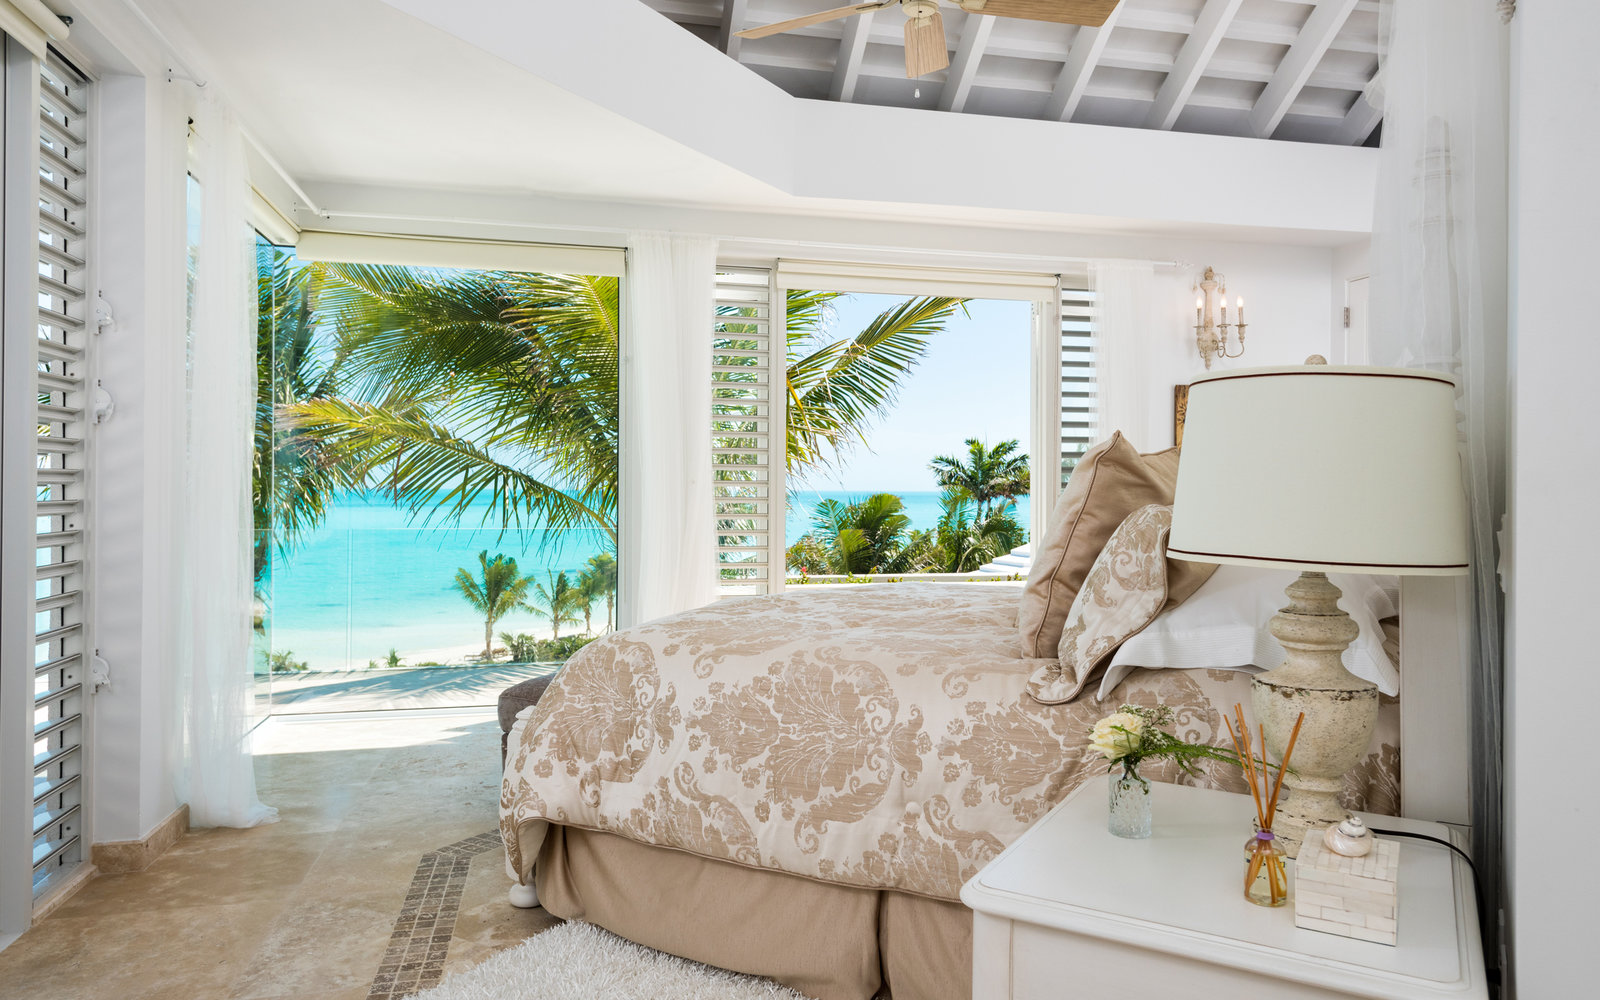 inside kylie jenner's turks and caicos airbnb   travel + leisure